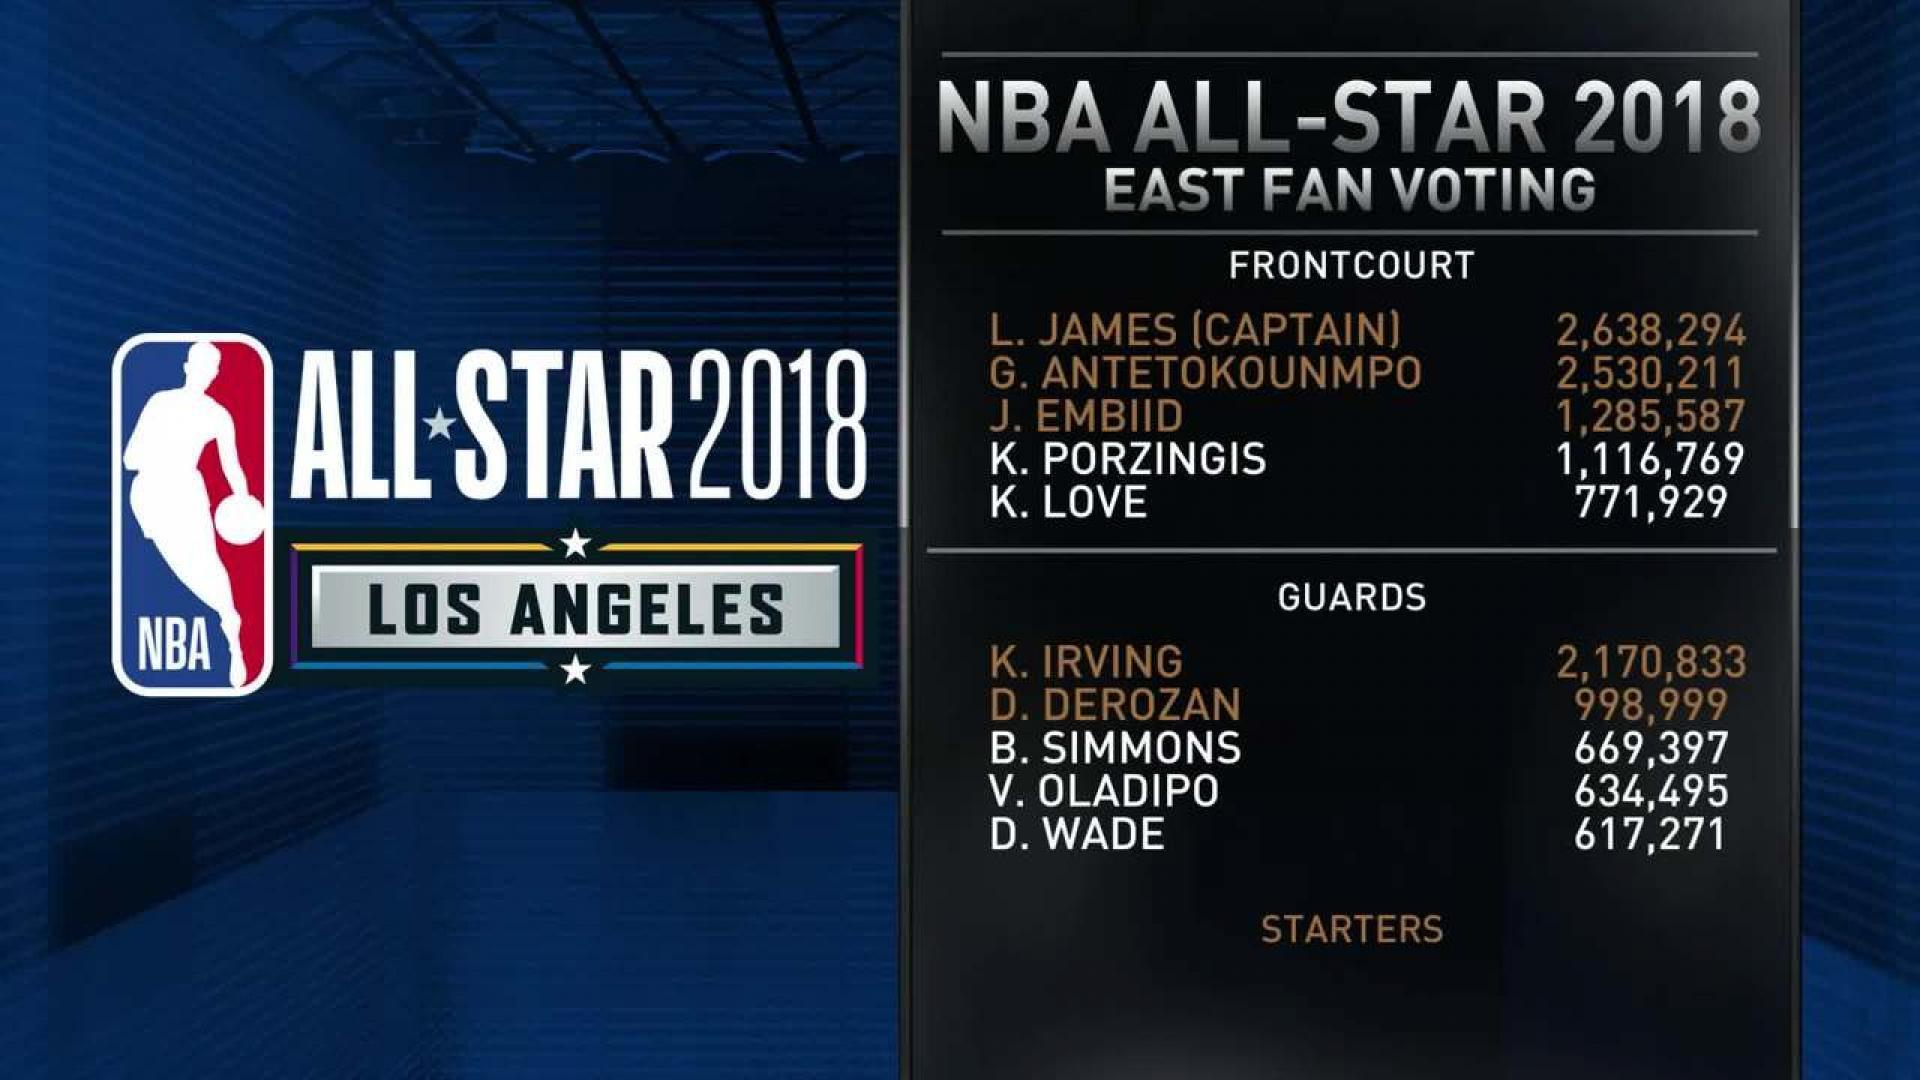 Draymond Green, Klay Thompson voted into All-Star Game